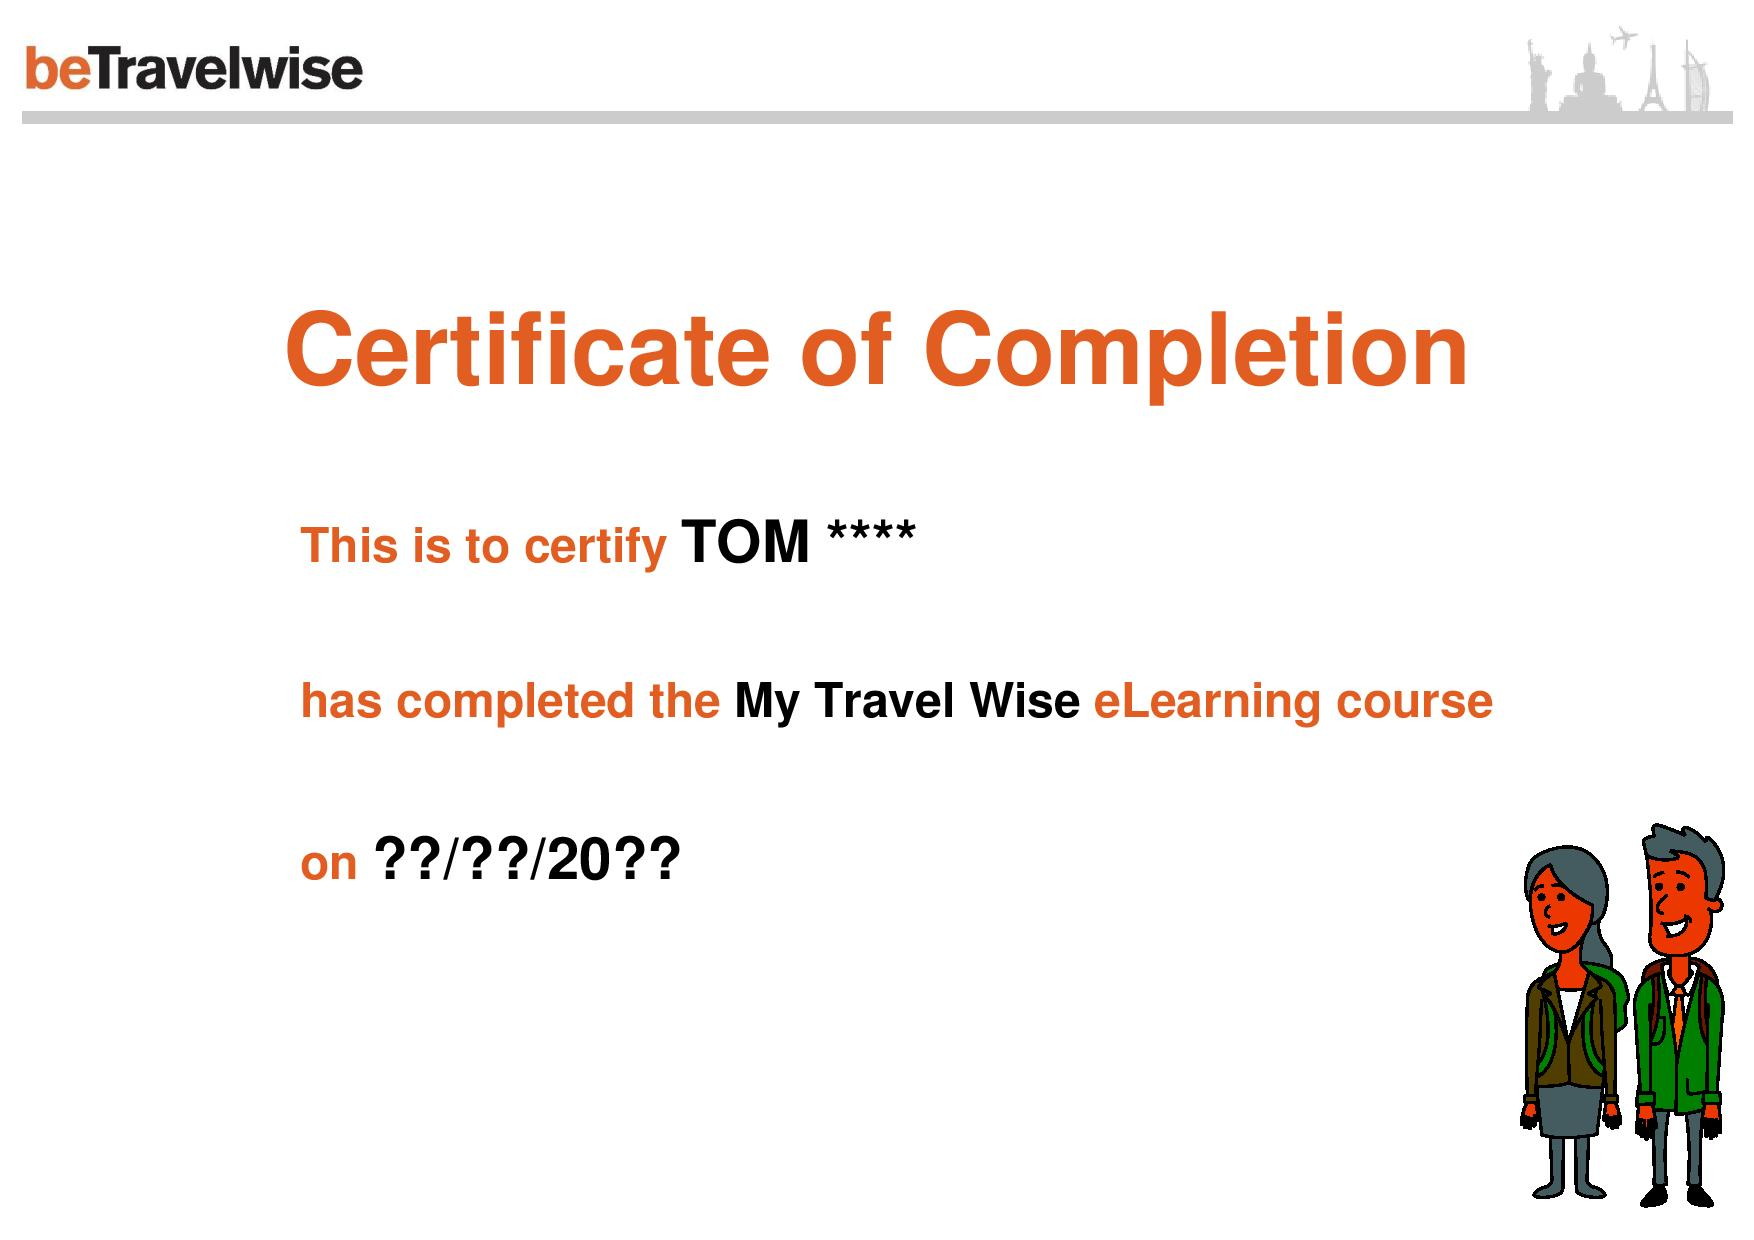 my-travel-wise-elearning-certificate_october-2016-page-001